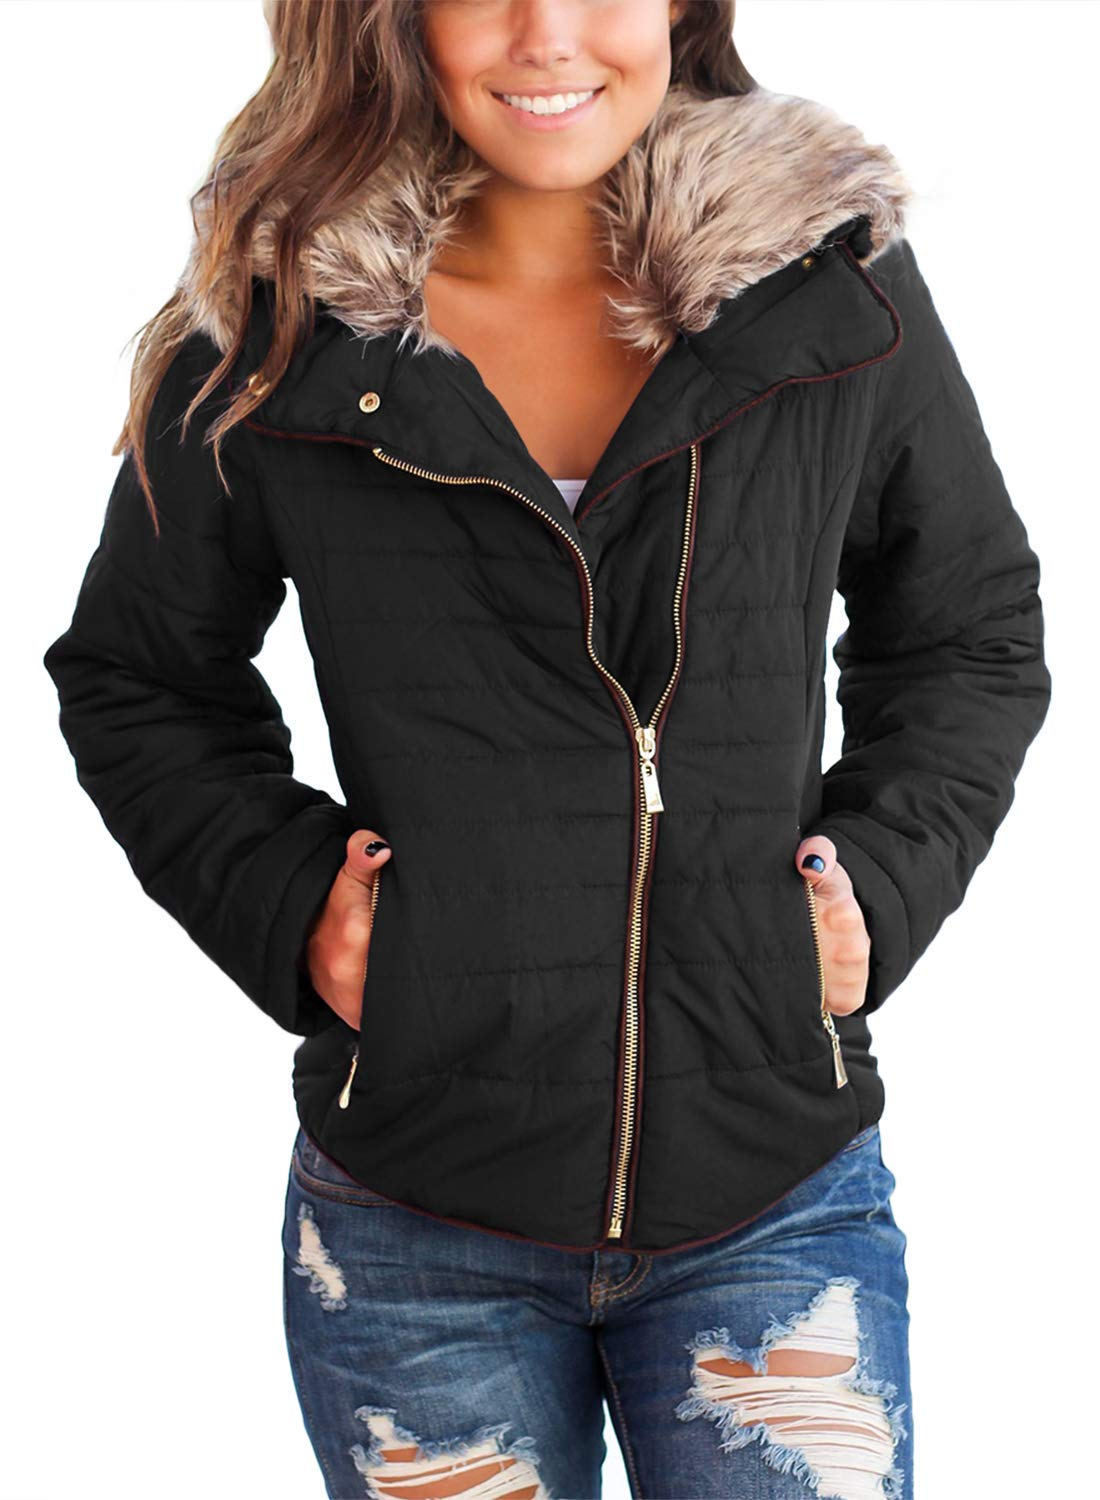 Vetinee Women Casual Faux Fur Lapel Zip Pockets Quilted Parka Jacket Puffer Coat Black Medium (Fits US 8-US 10) by Vetinee